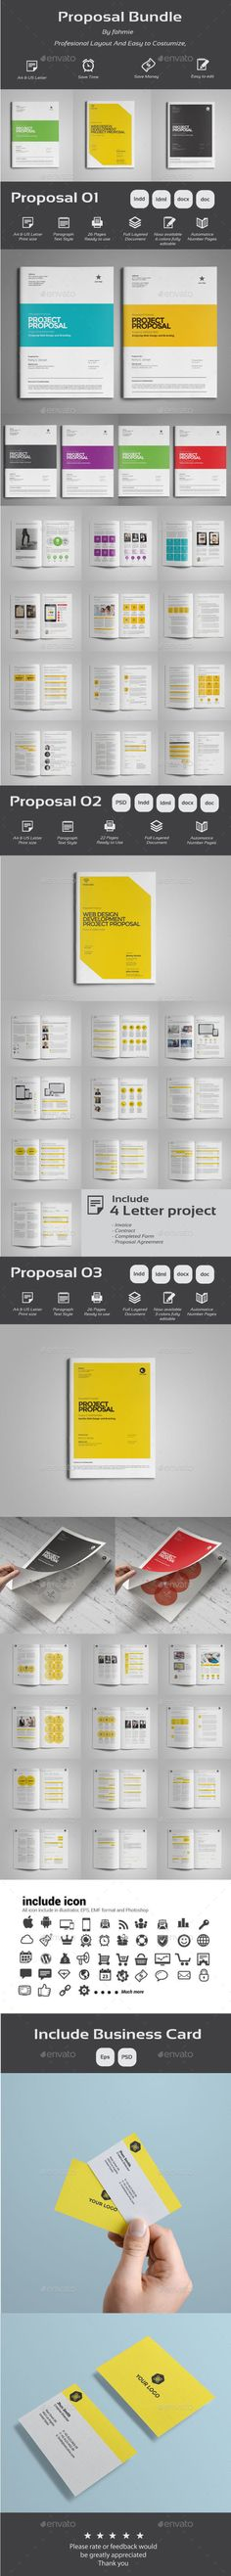 Proposal Bundle Templates #design Download: http://graphicriver.net/item/proposal-bundle/13918986?ref=ksioks